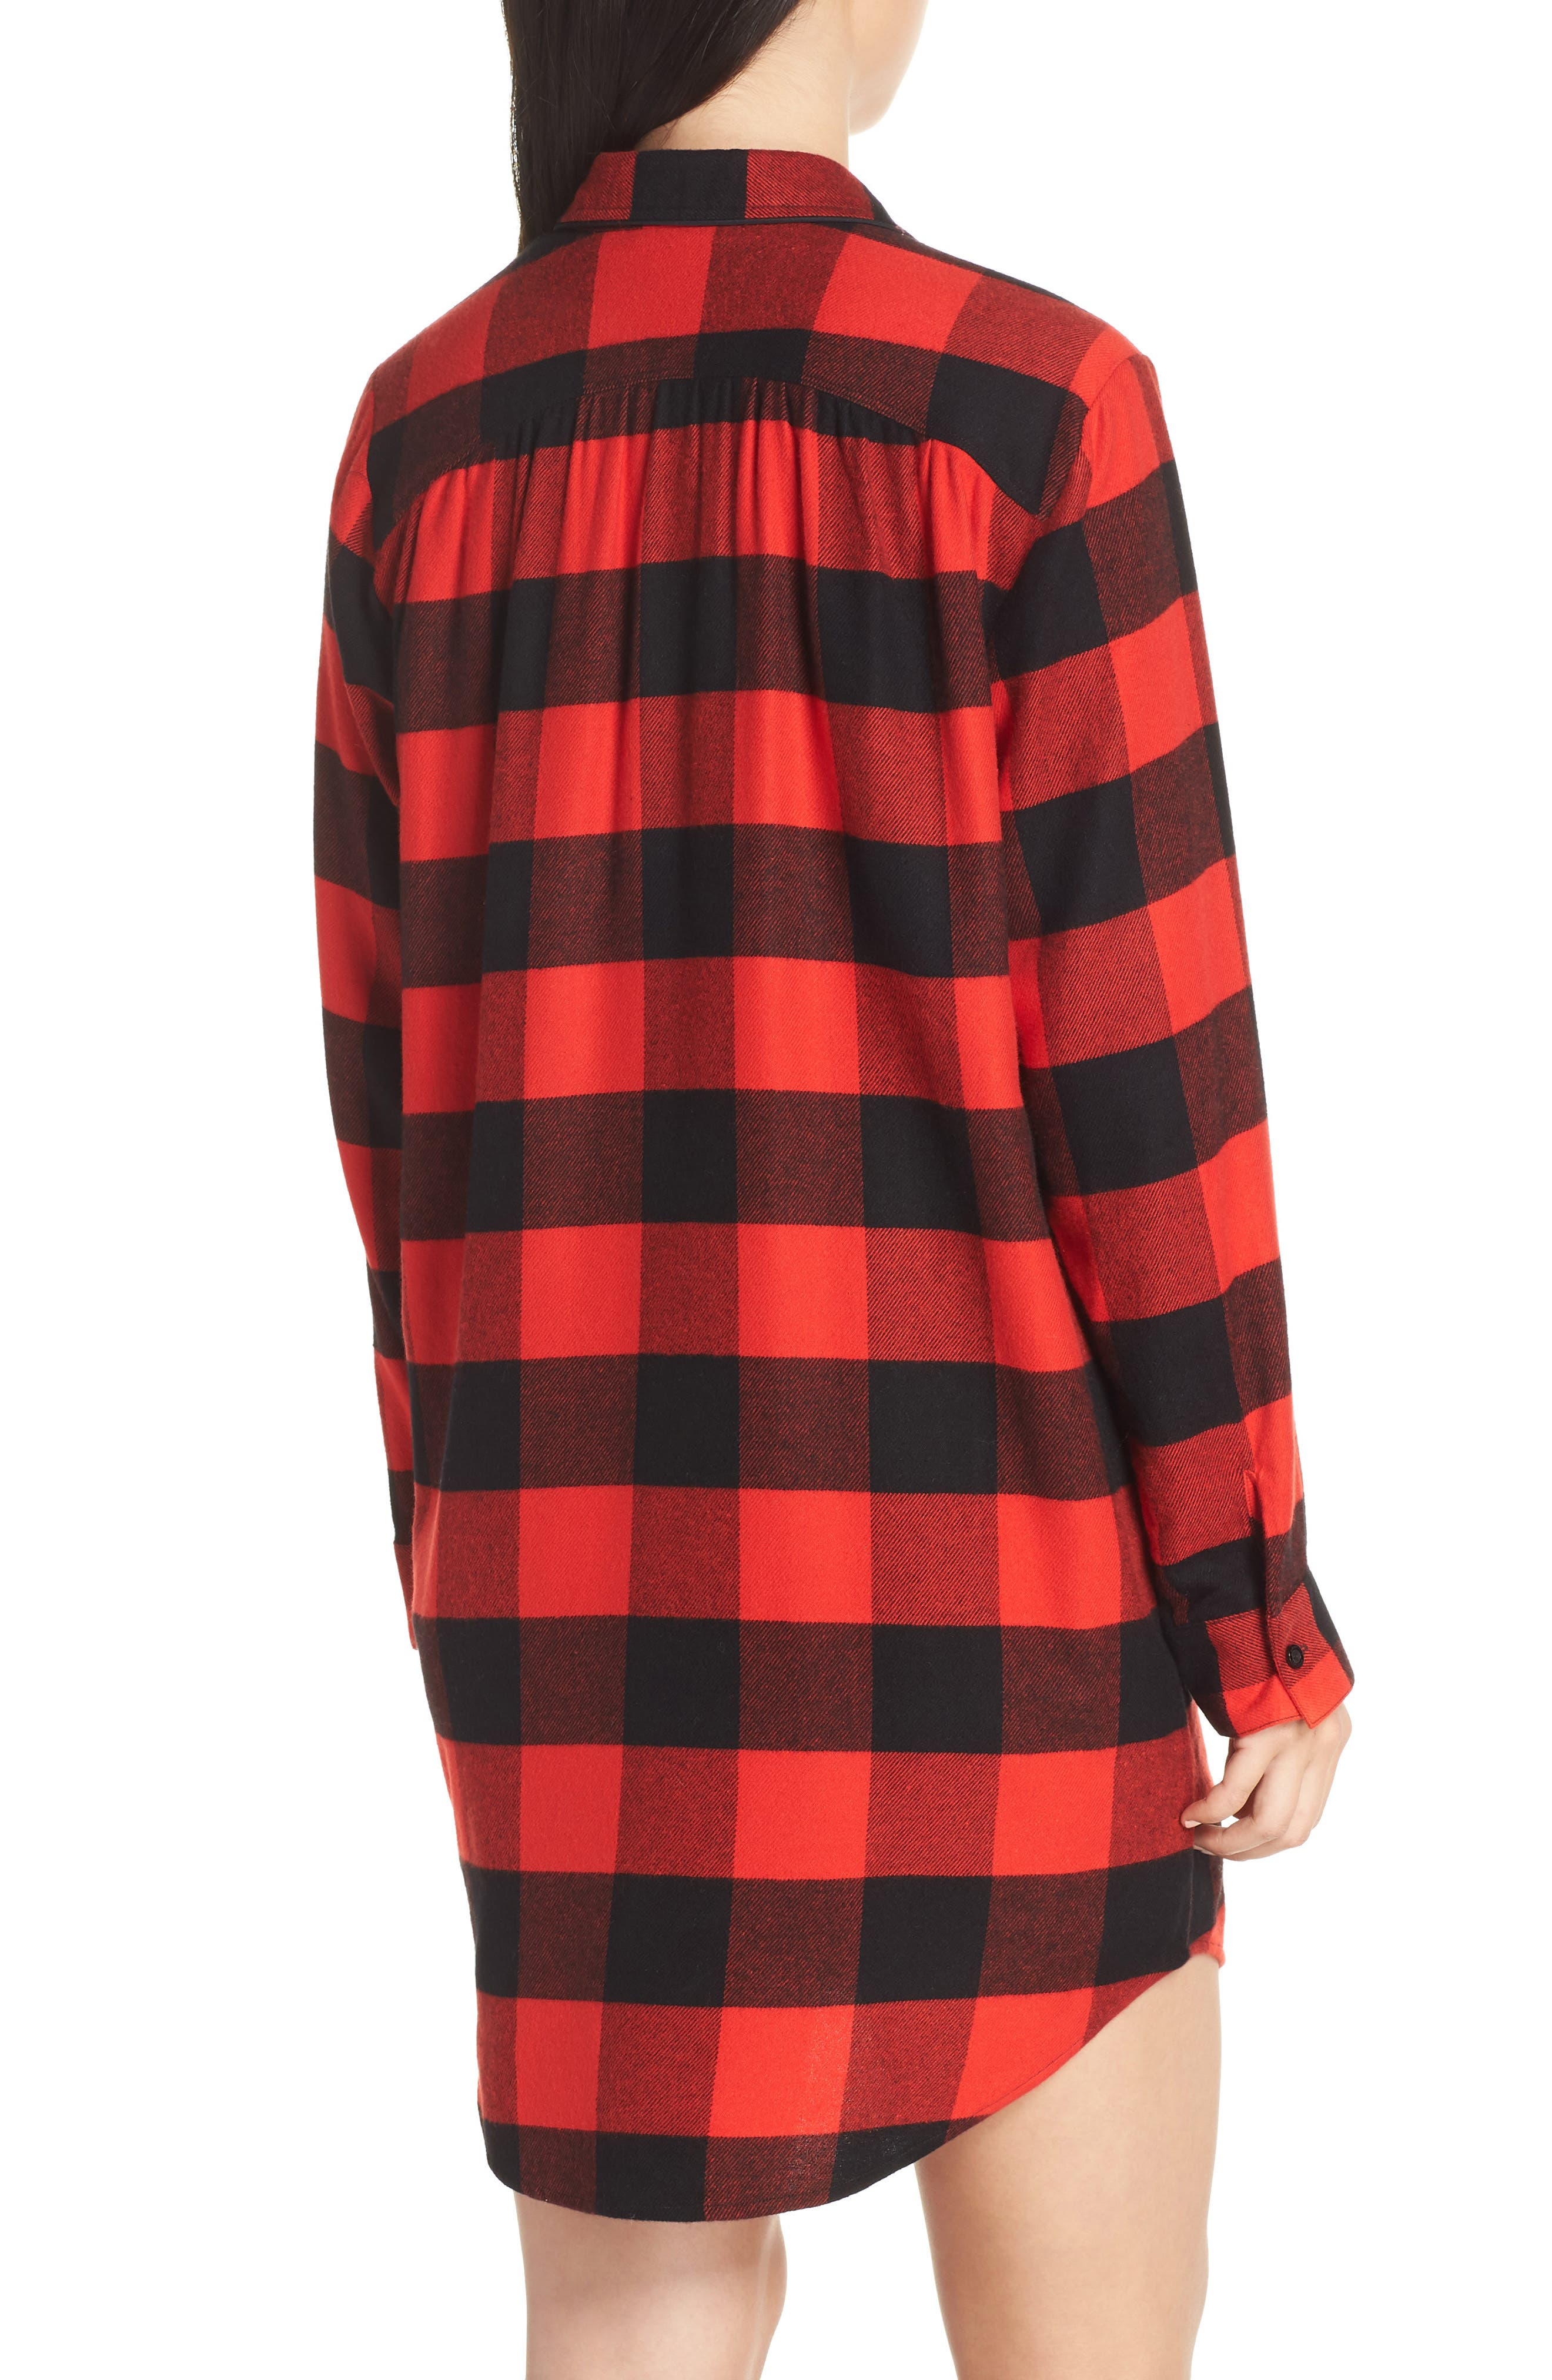 Flannel Nightshirt,                             Alternate thumbnail 2, color,                             RED BLOOM LARGE BUFFALO CHECK